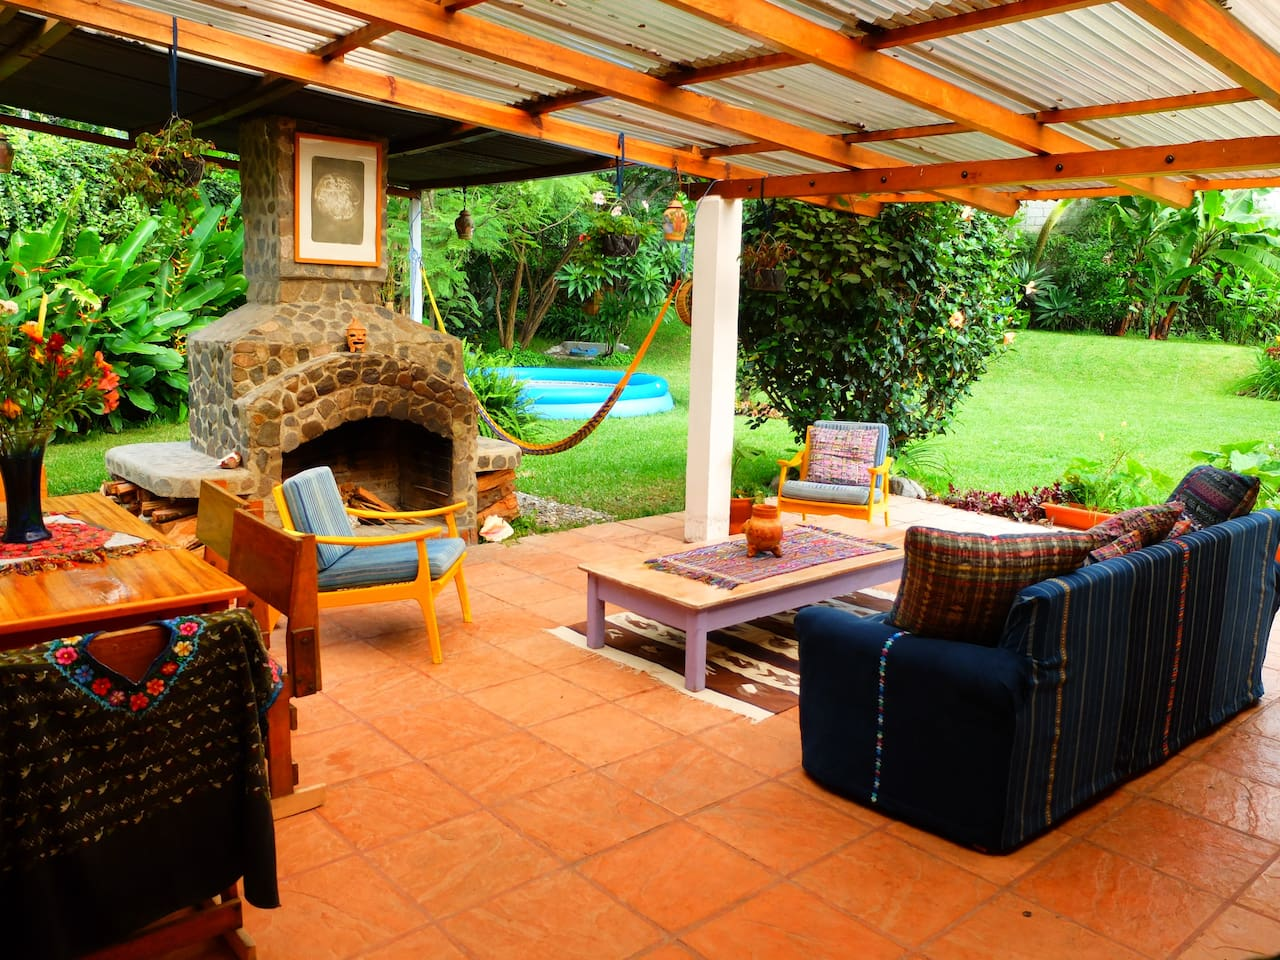 Wonderful outside Patio with fireplace and garden view.